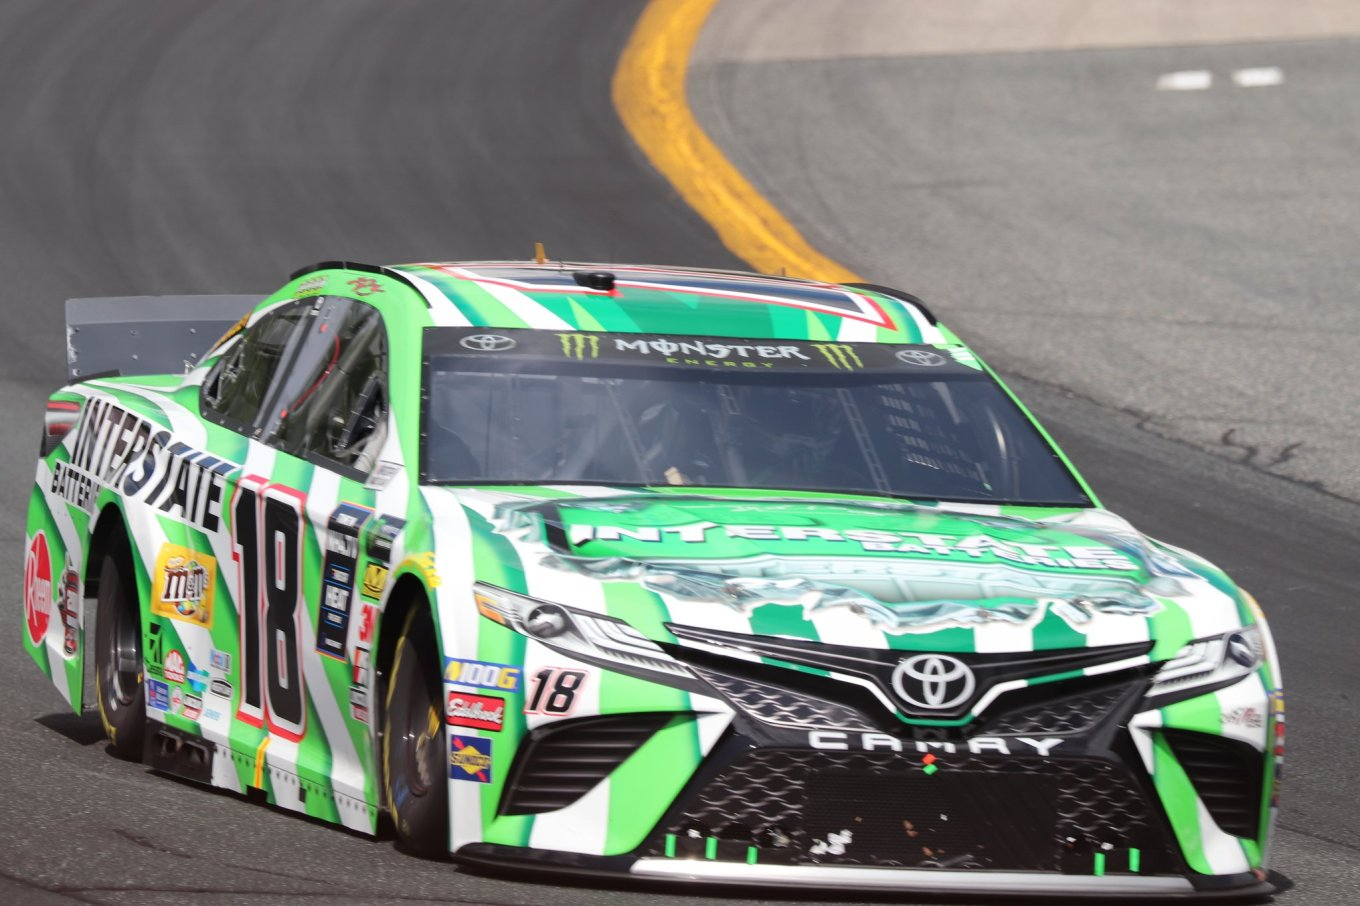 Kyle Busch 18 New Hampshire 2019